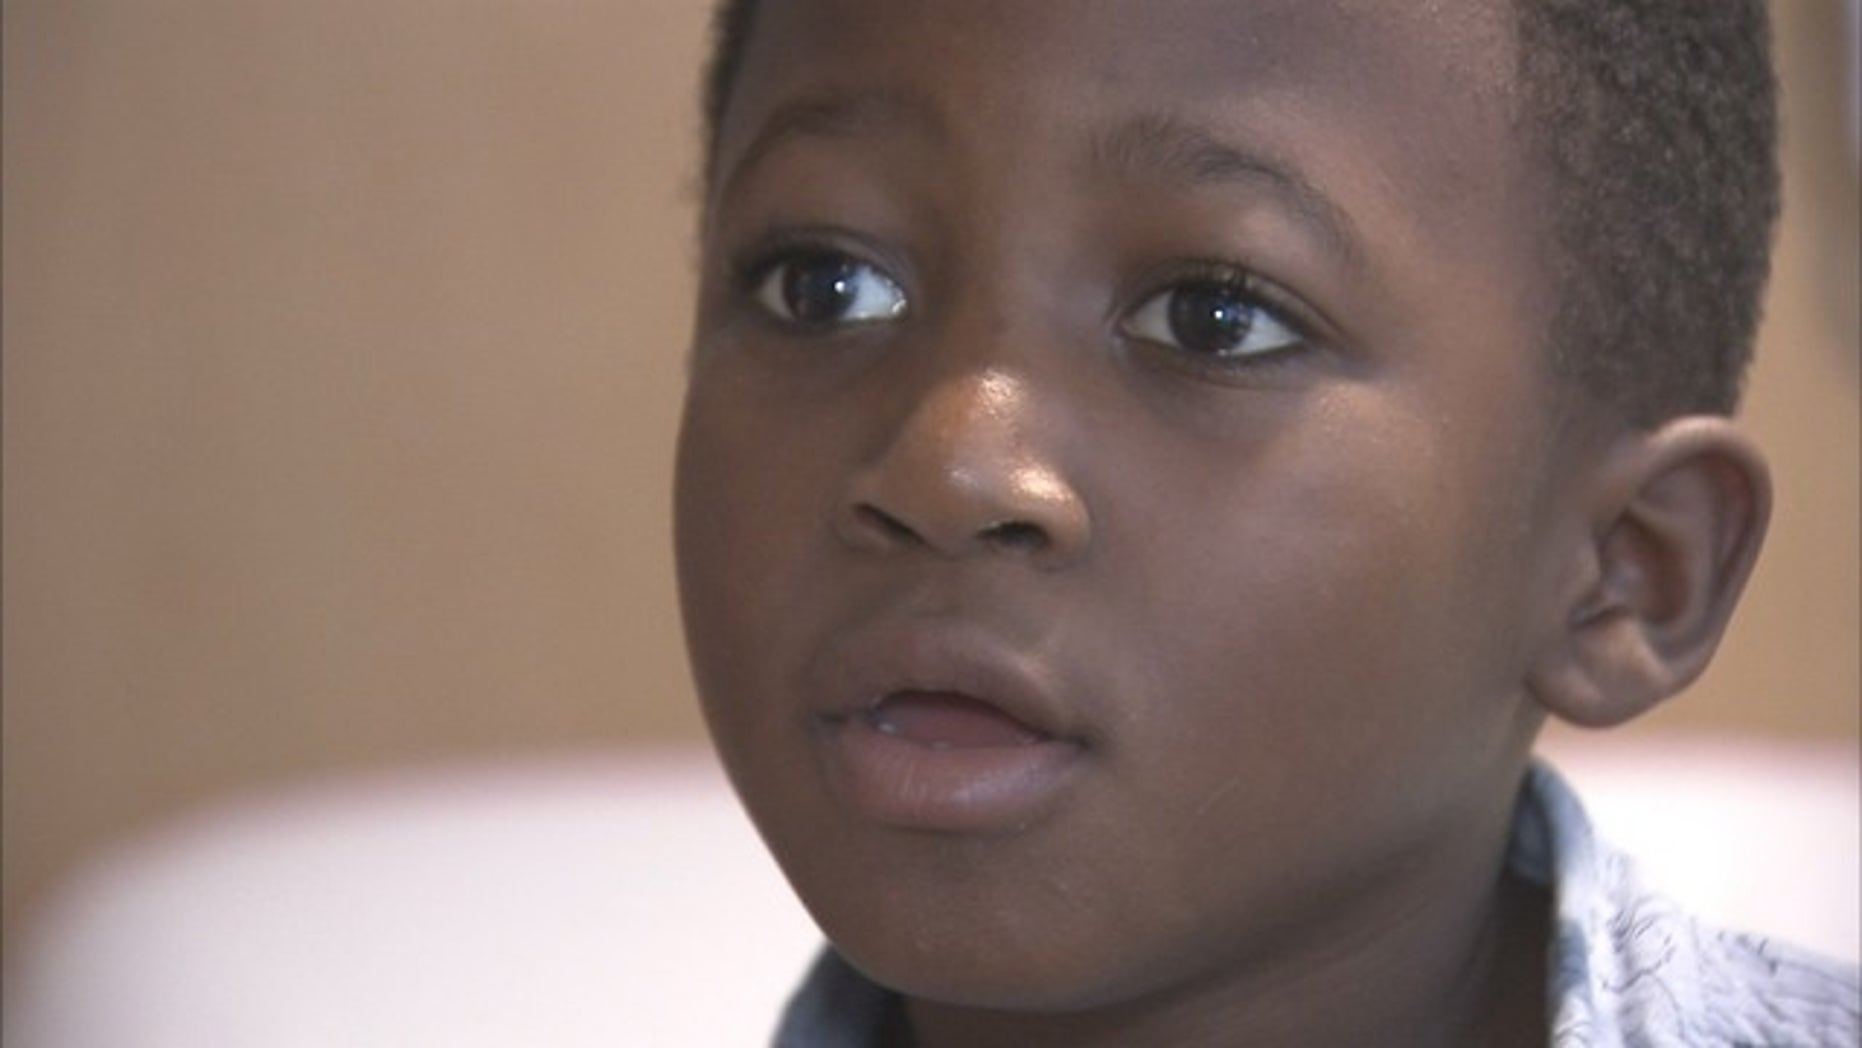 Ayden Palmer, 6, beat brain cancer in December and now faces hours-long transfusion procedures as he waits for a match.